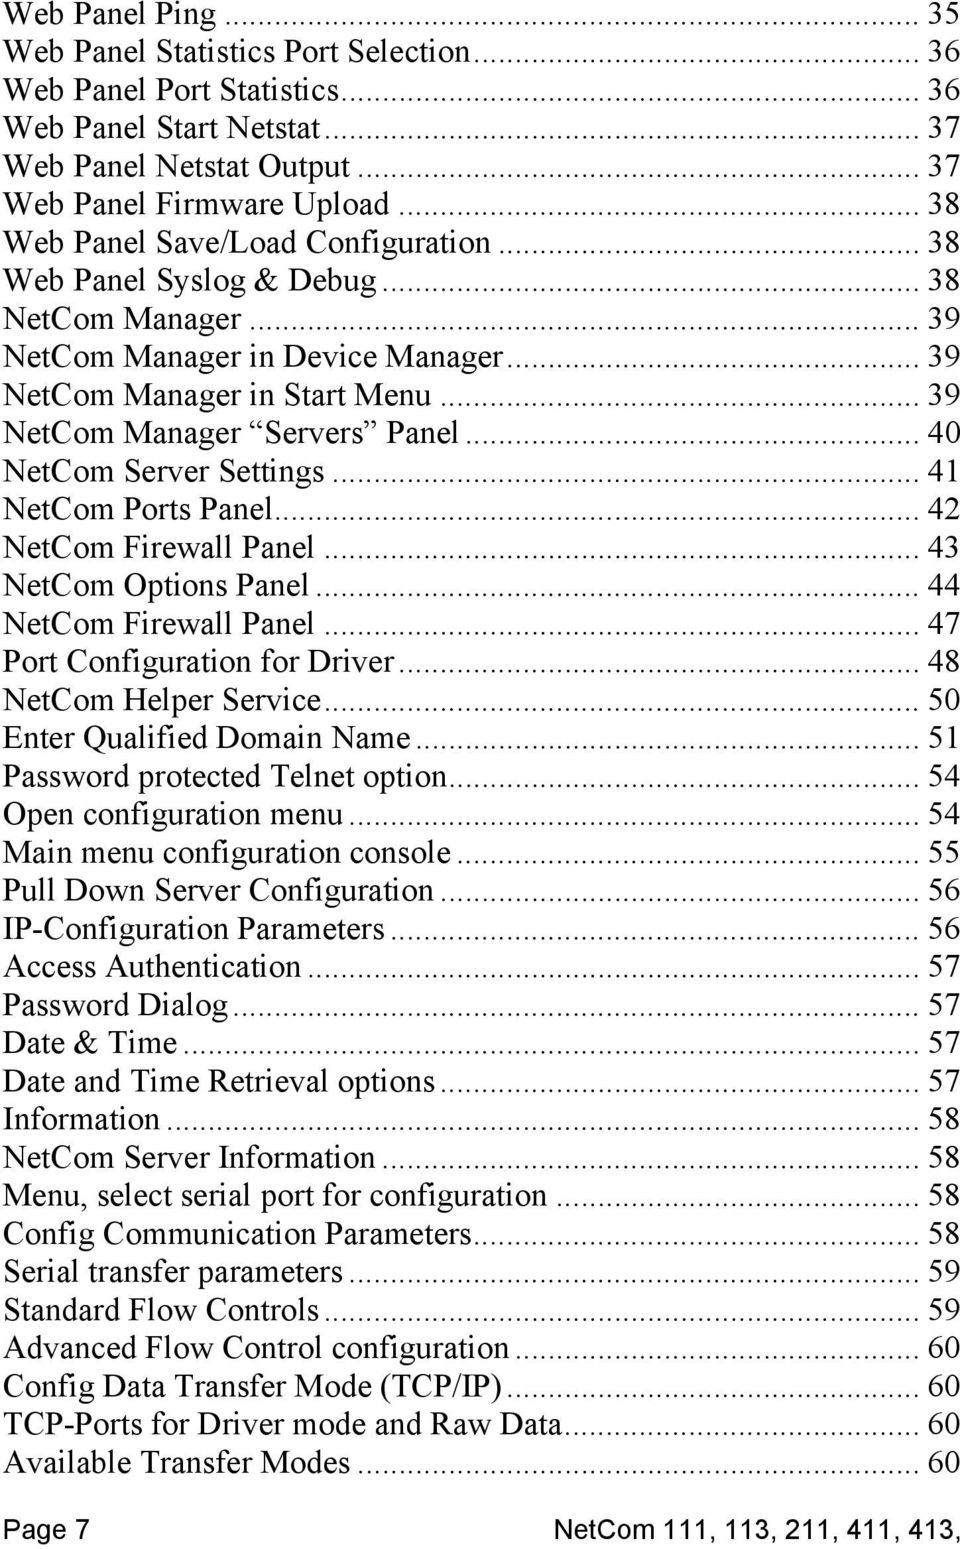 .. 40 NetCom Server Settings... 41 NetCom Ports Panel... 42 NetCom Firewall Panel... 43 NetCom Options Panel... 44 NetCom Firewall Panel... 47 Port Configuration for Driver... 48 NetCom Helper Service.